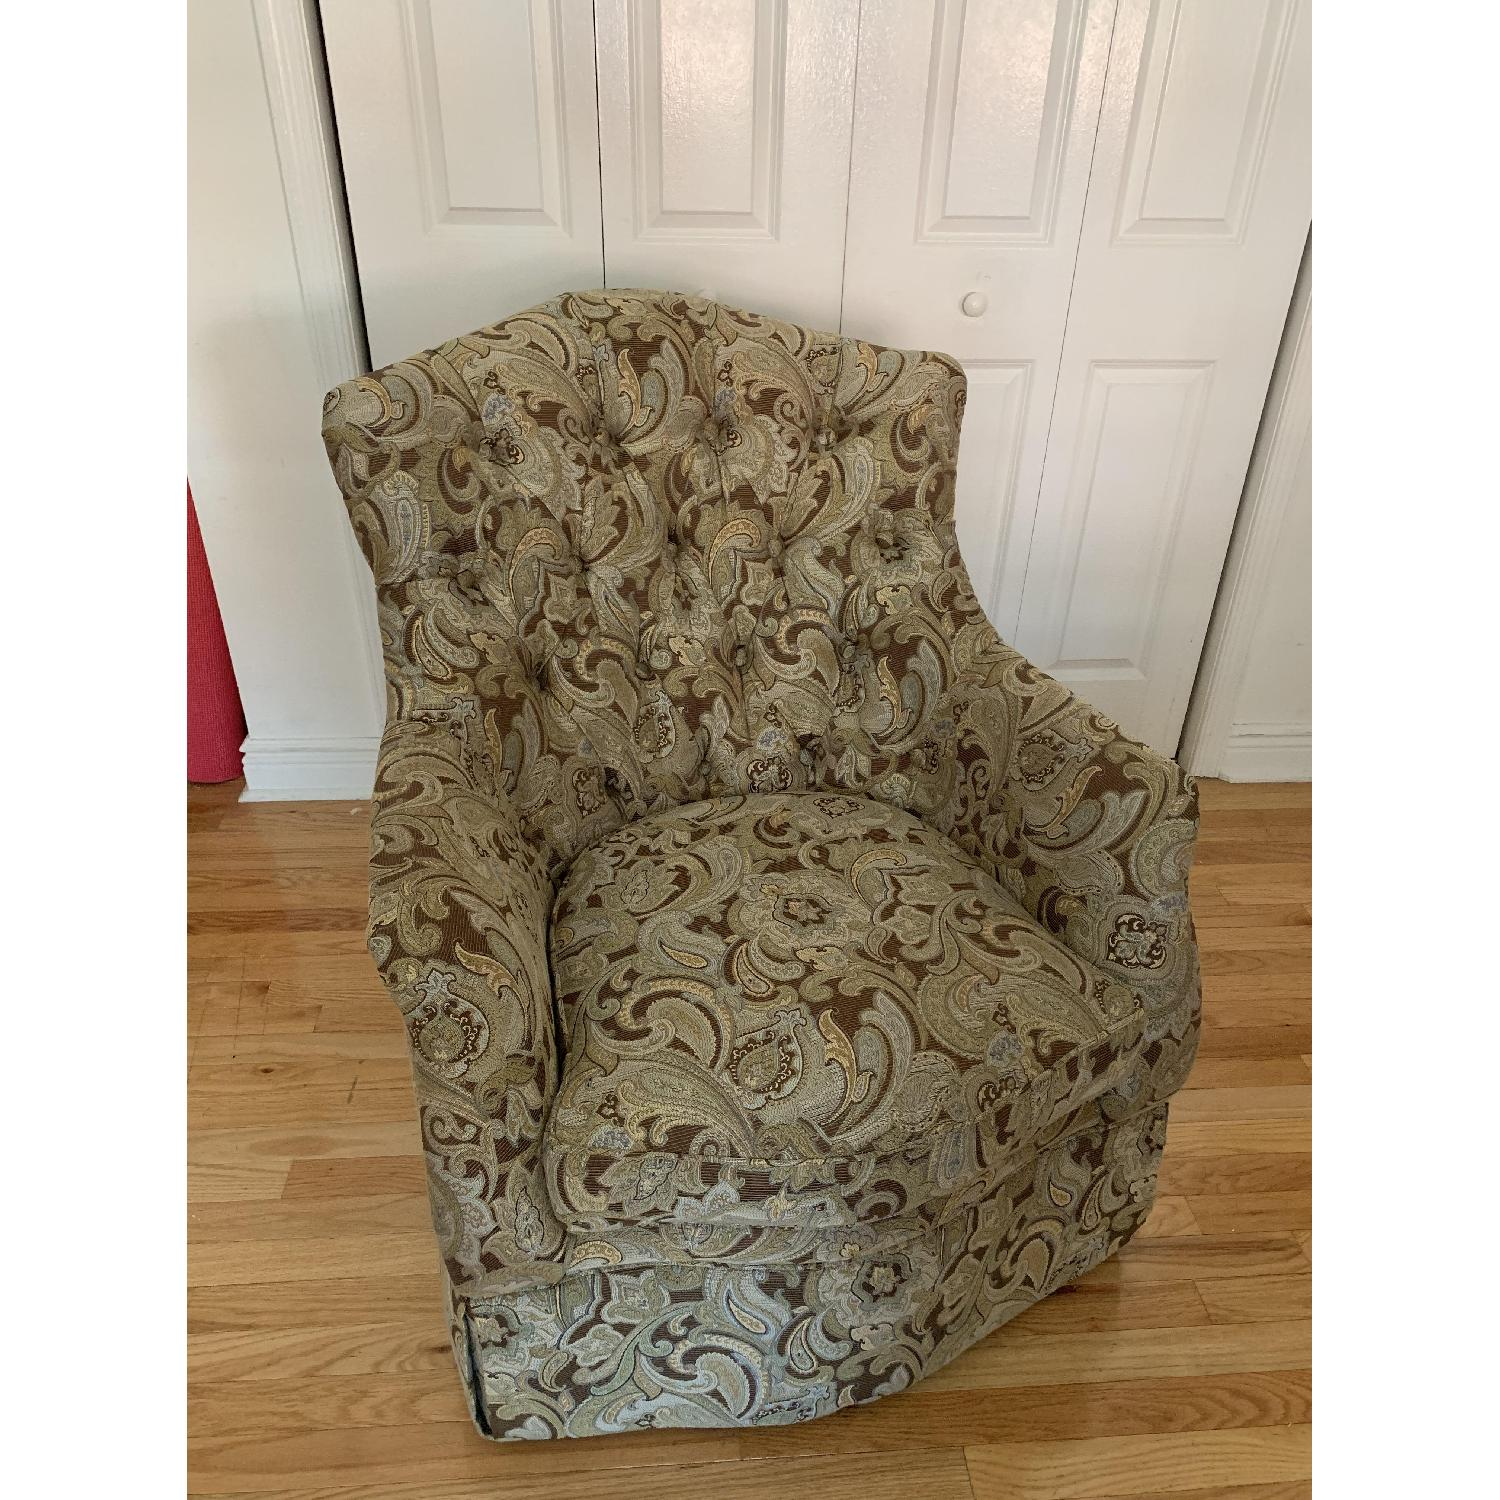 Schnadig Upholstered Arm Chair - image-1